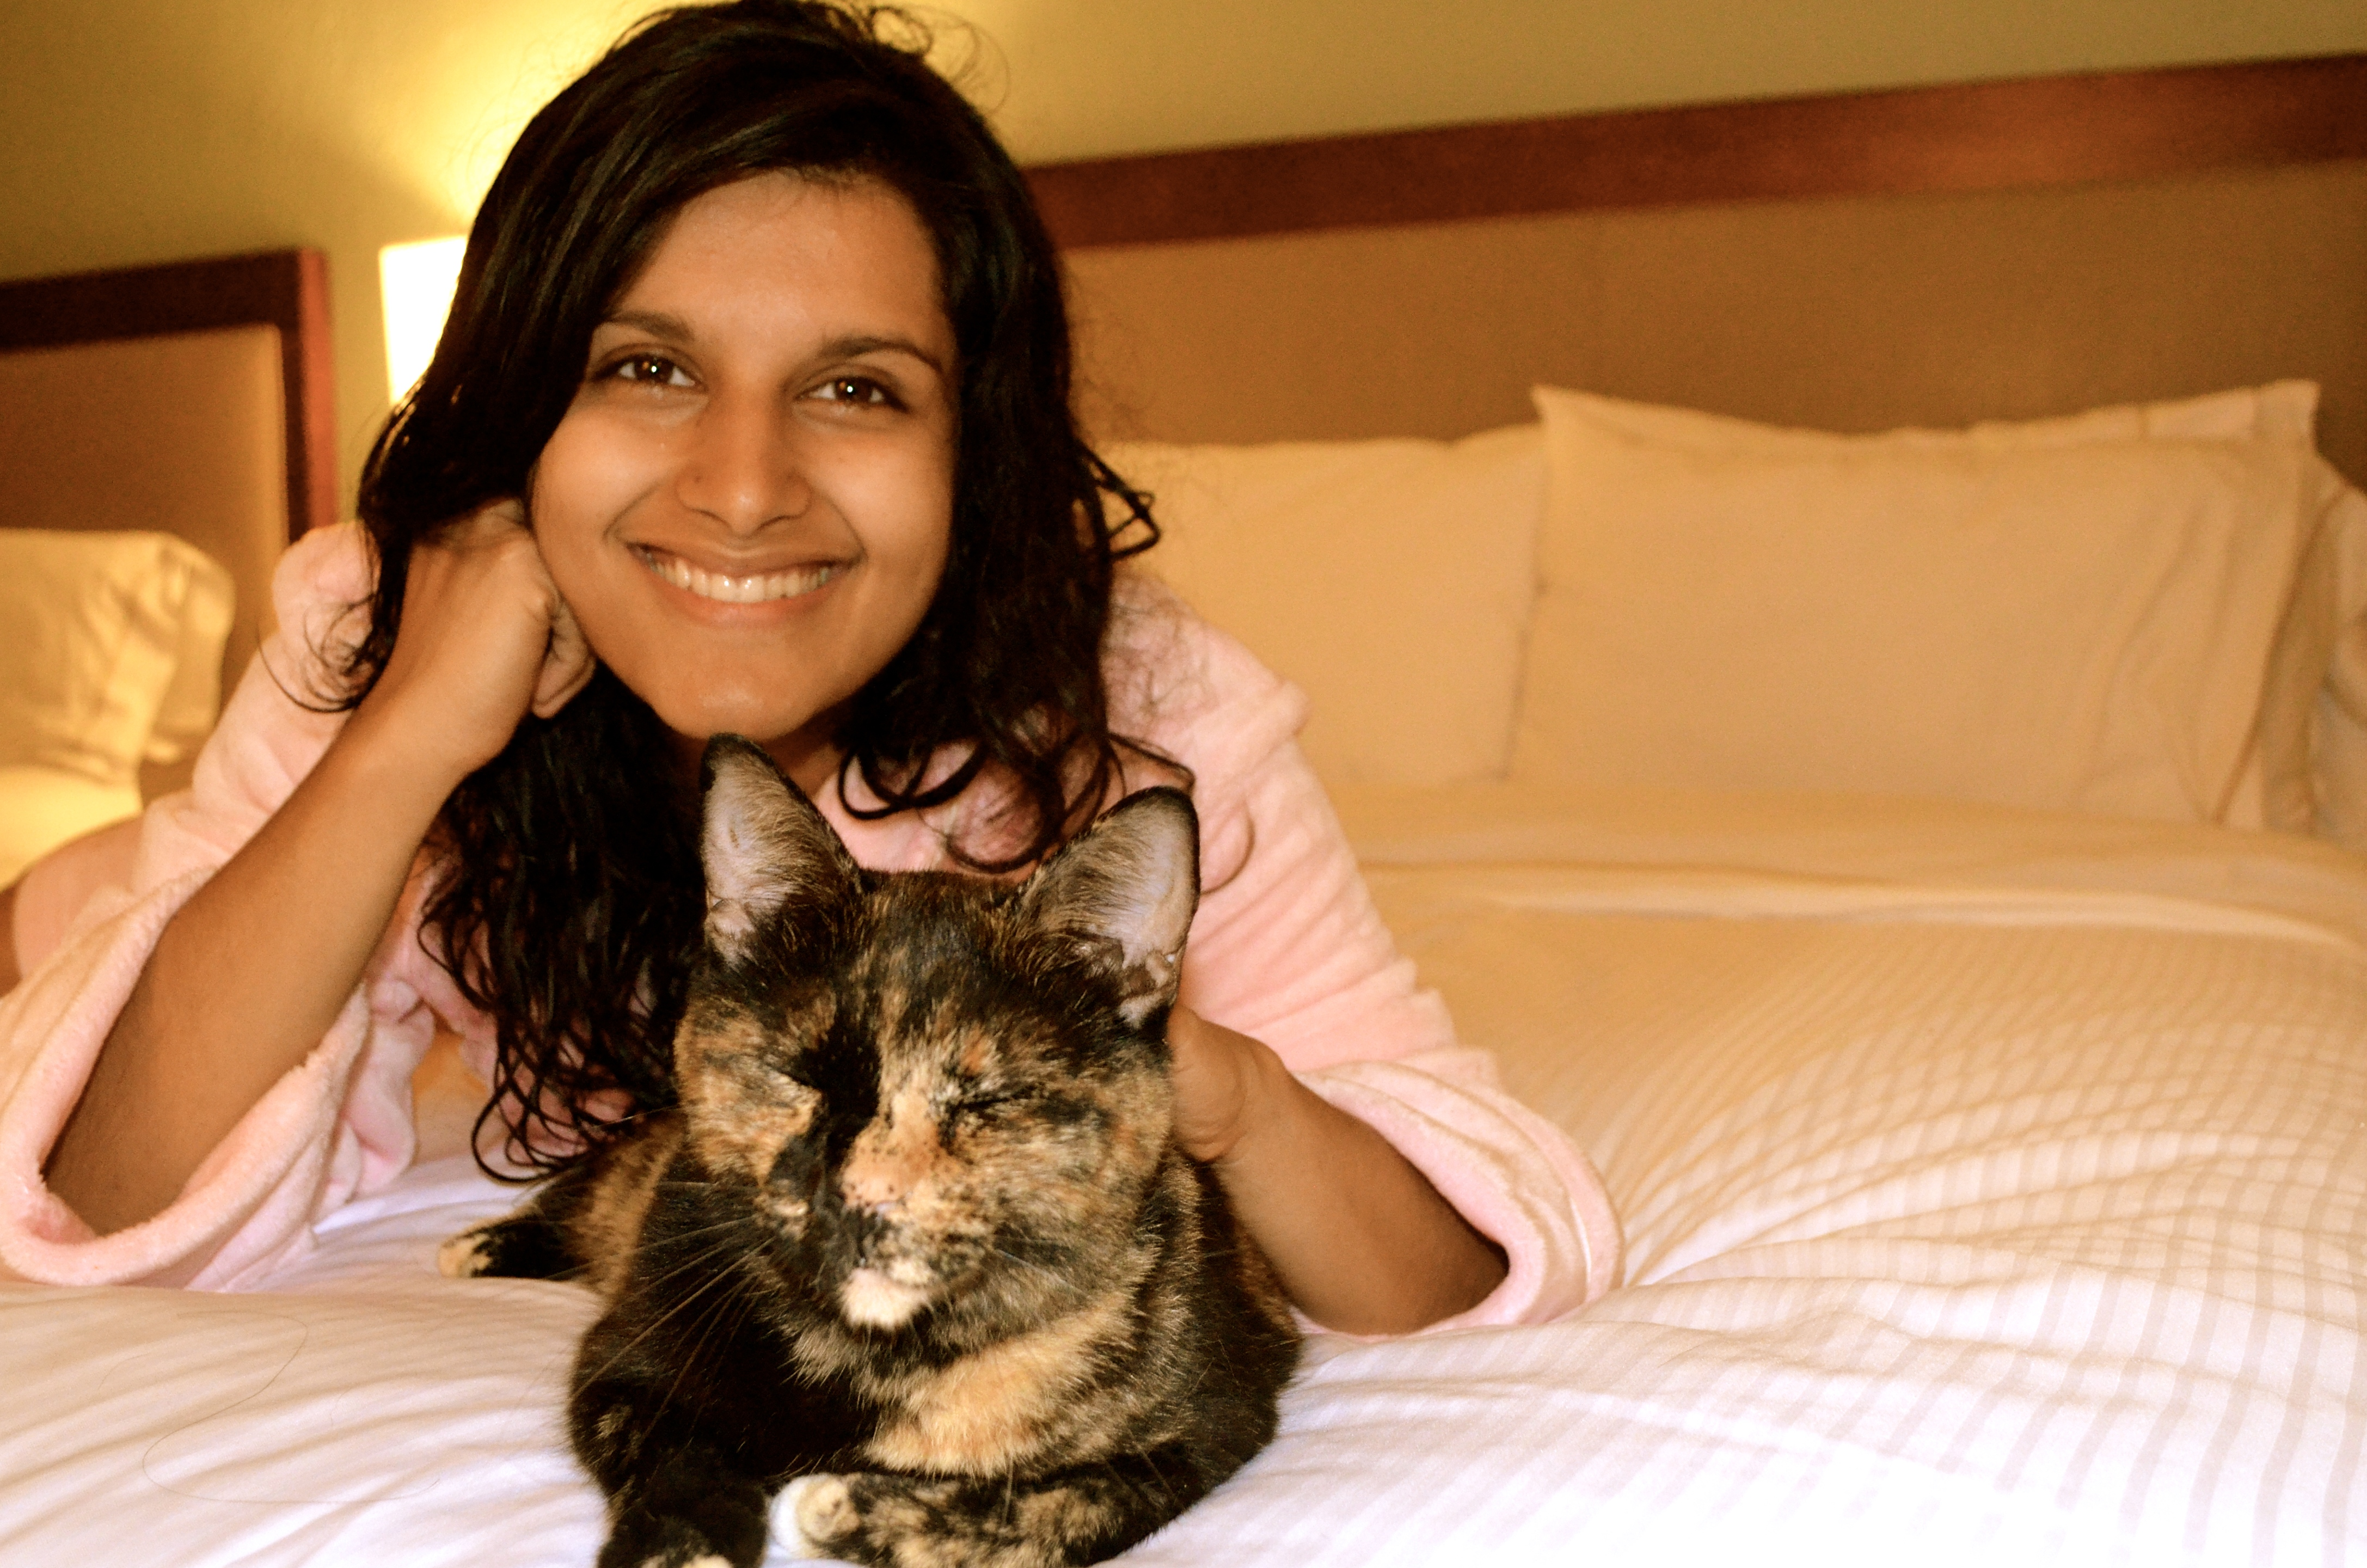 Founder shares plans for D.C.'s first cat café, Crumbs and Whiskers